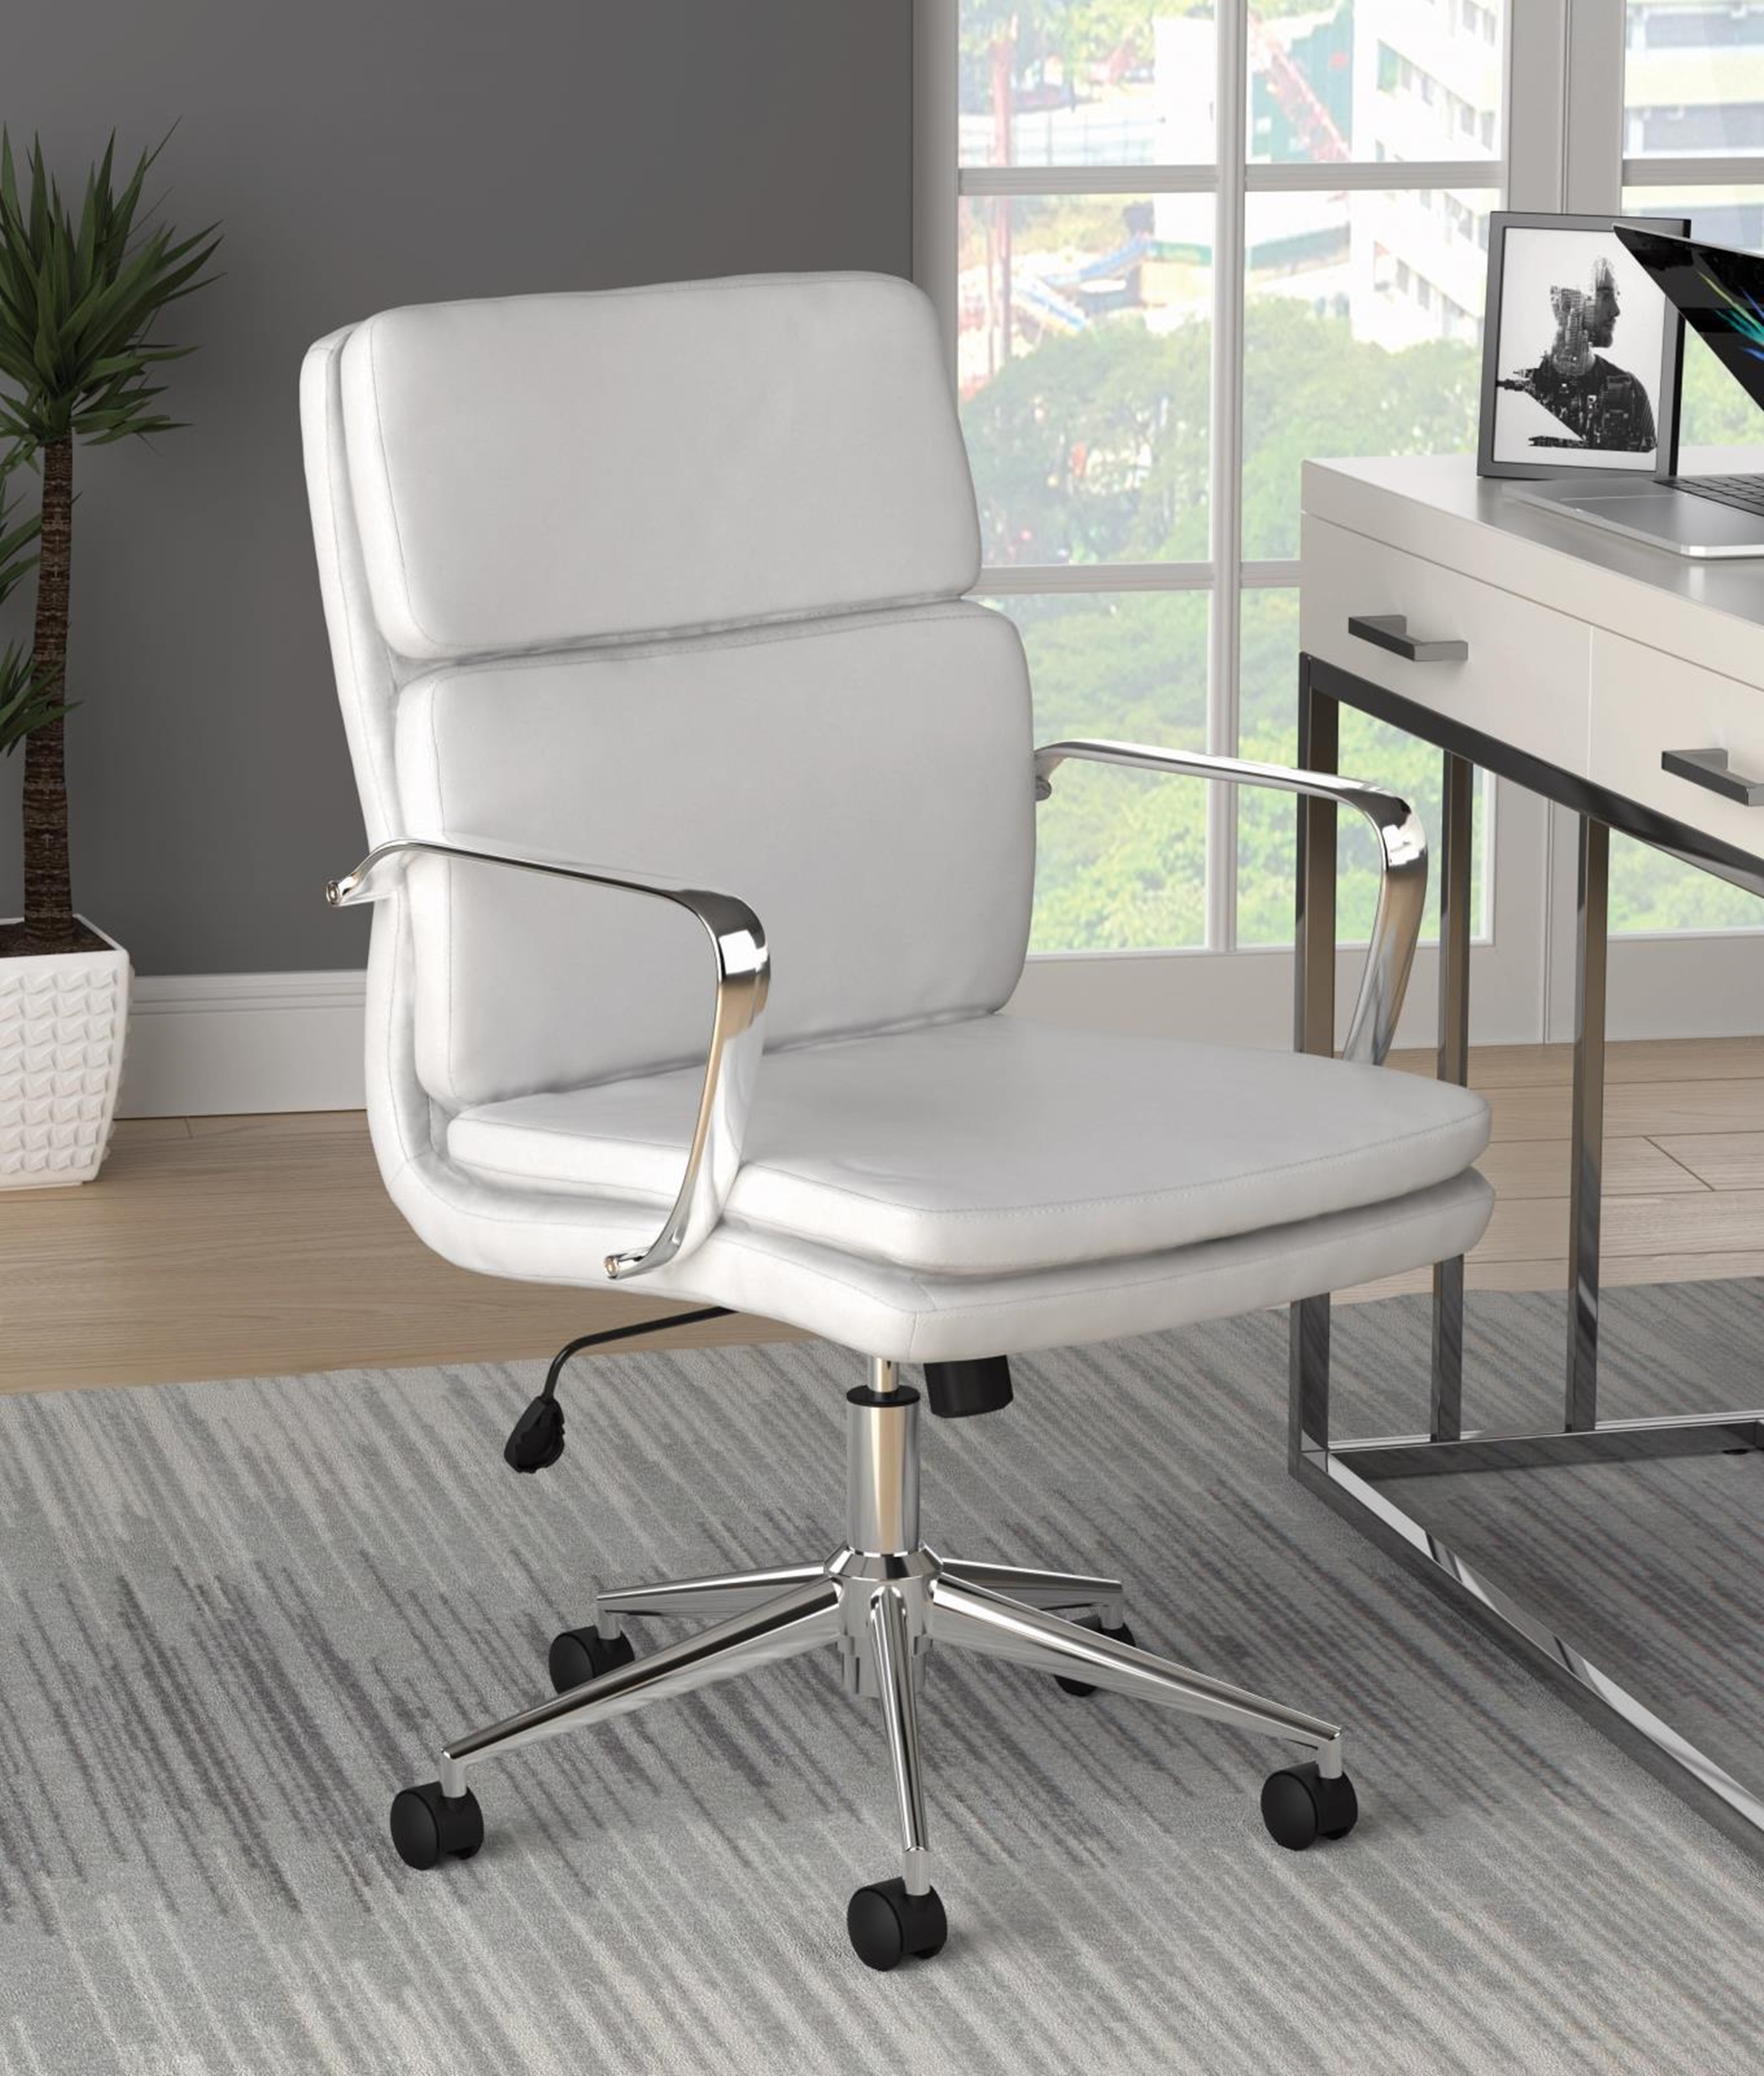 801767 - Office Chair